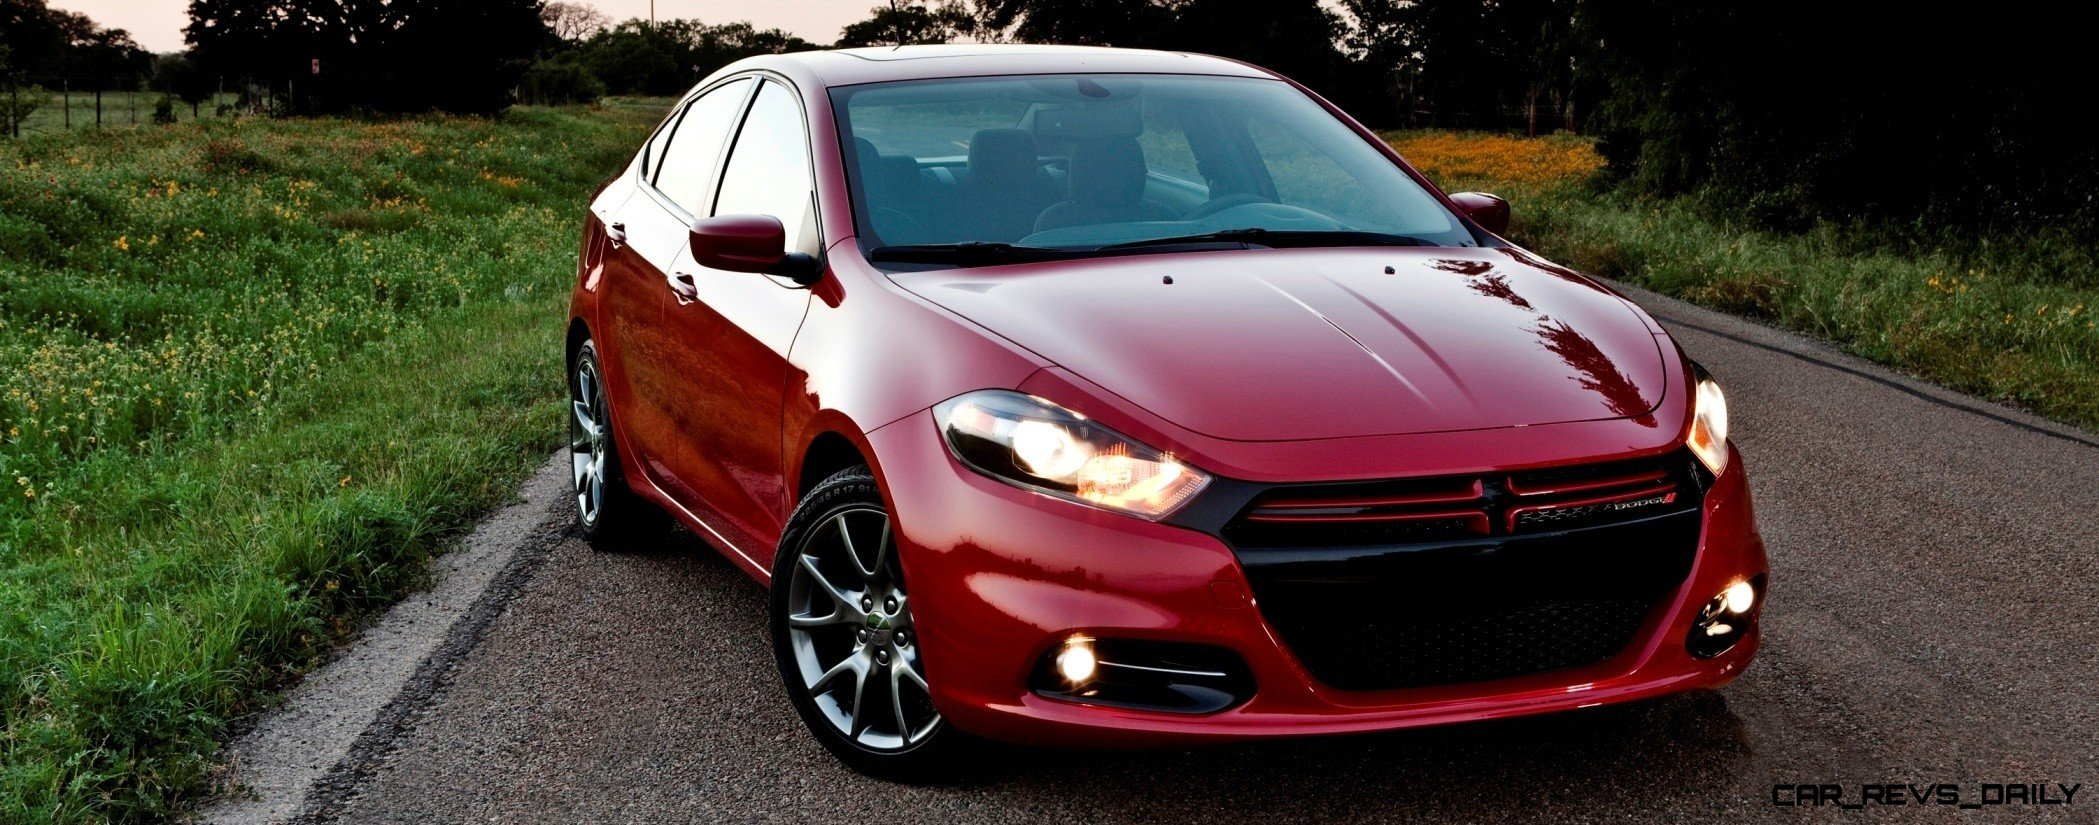 update1 2014 dodge dart is low and wide engines eager for better hp via tuning scat pack. Black Bedroom Furniture Sets. Home Design Ideas